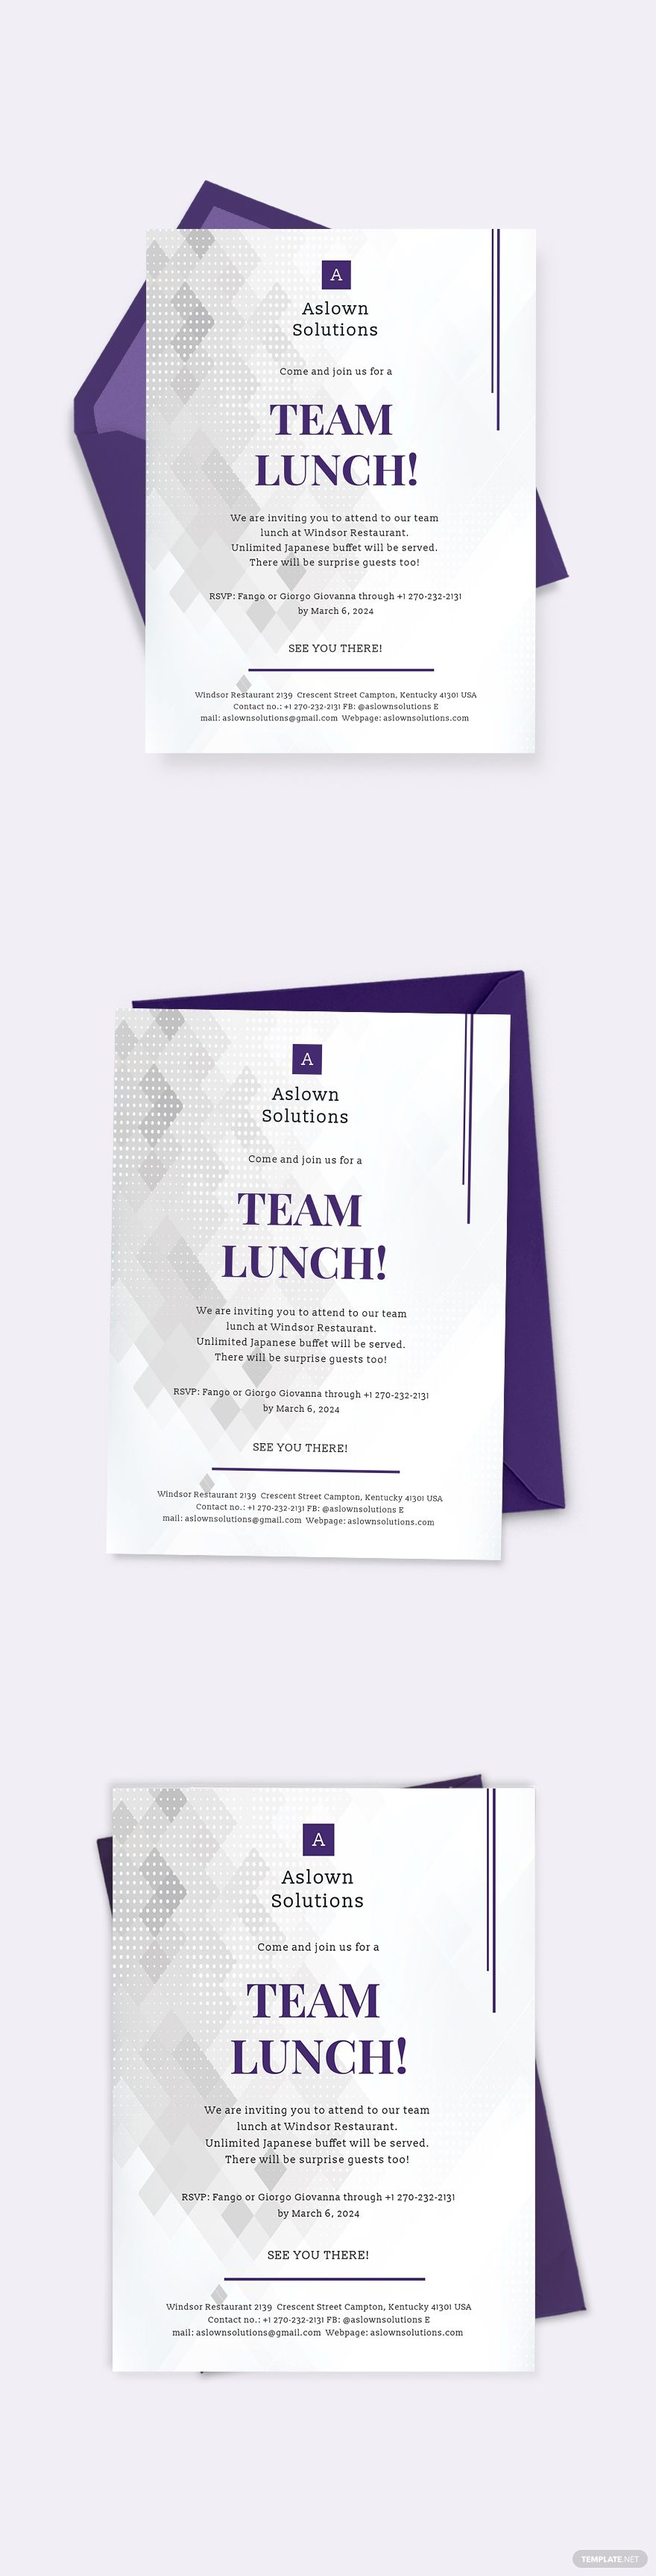 Team Lunch Invitation Template Word Doc Psd Apple Mac Pages Google Docs Illustrator Publisher Outlook Invitation Template Lunch Invitation Word Doc